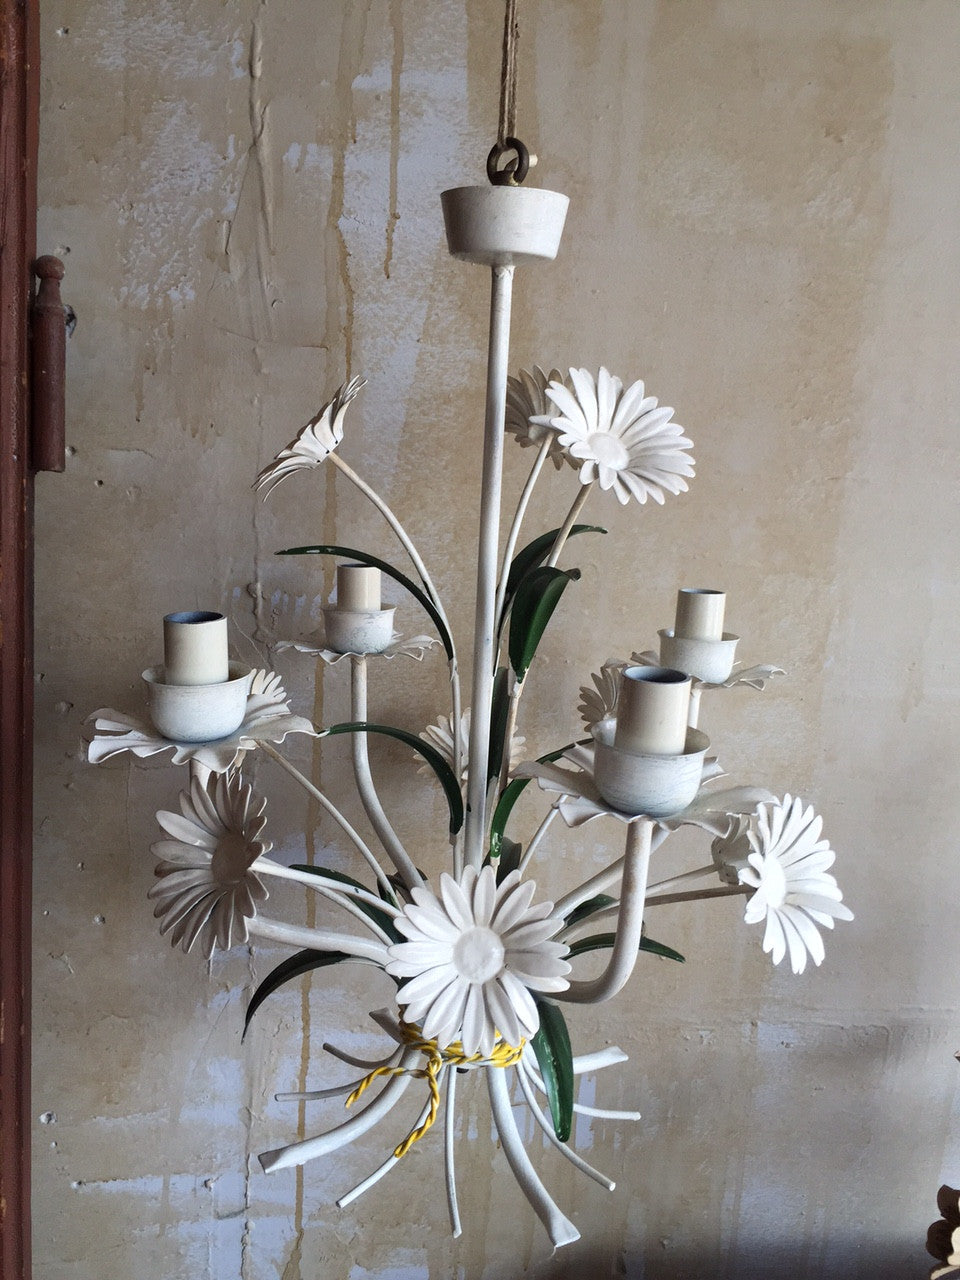 Vintage Tole Chandelier with Daisies Vintage Tole Chandelier - Daisy -  Mercato Antiques - 1 ... - Vintage Tole Chandelier With Daisies MERCATO Antiques